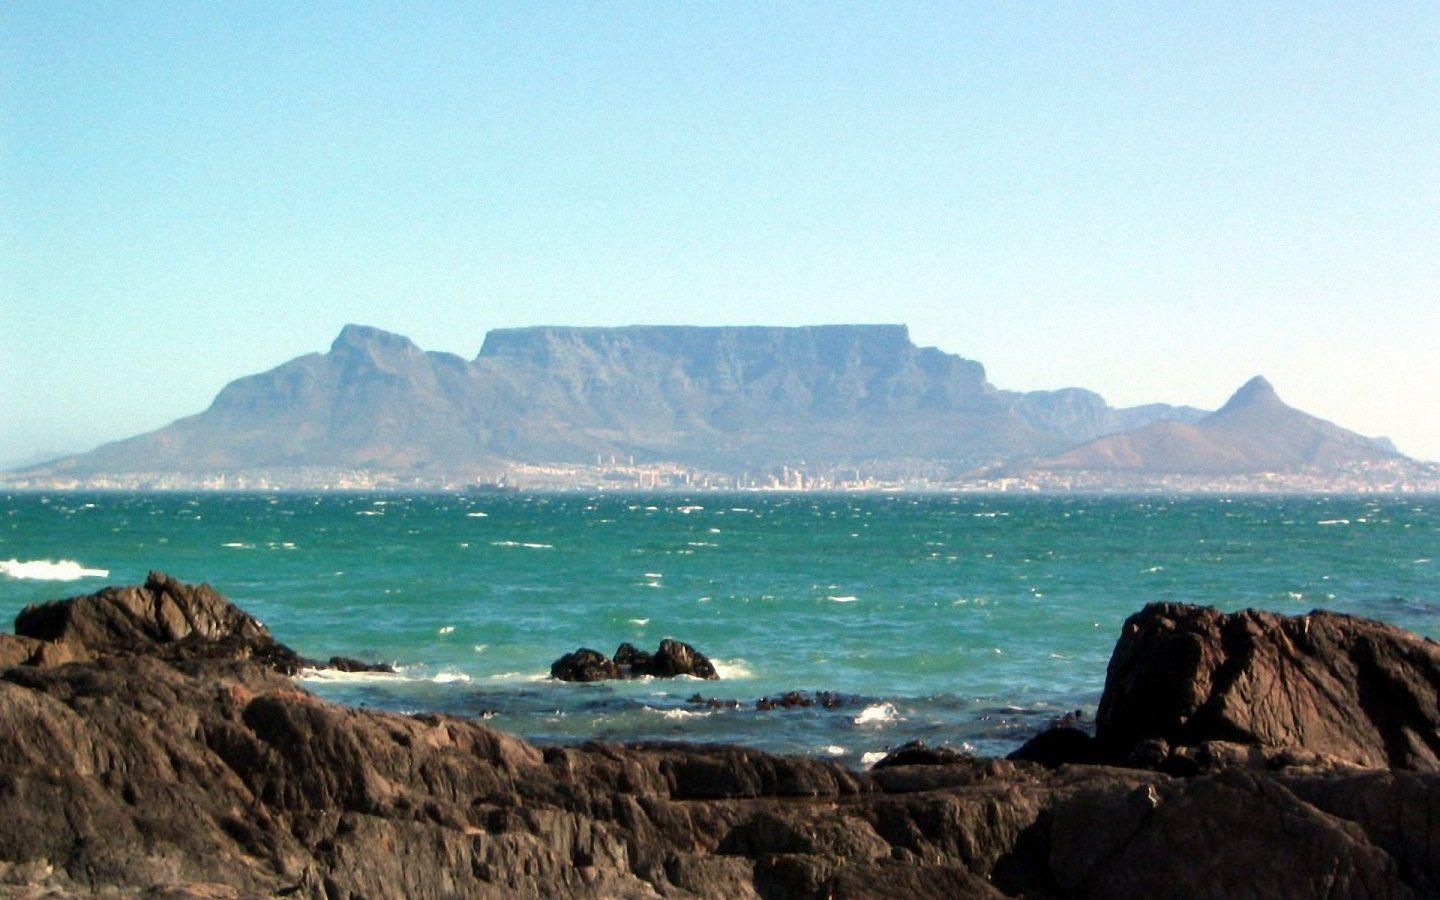 Table Mountain View Wallpaper 1440x900 | Hot HD Wallpaper